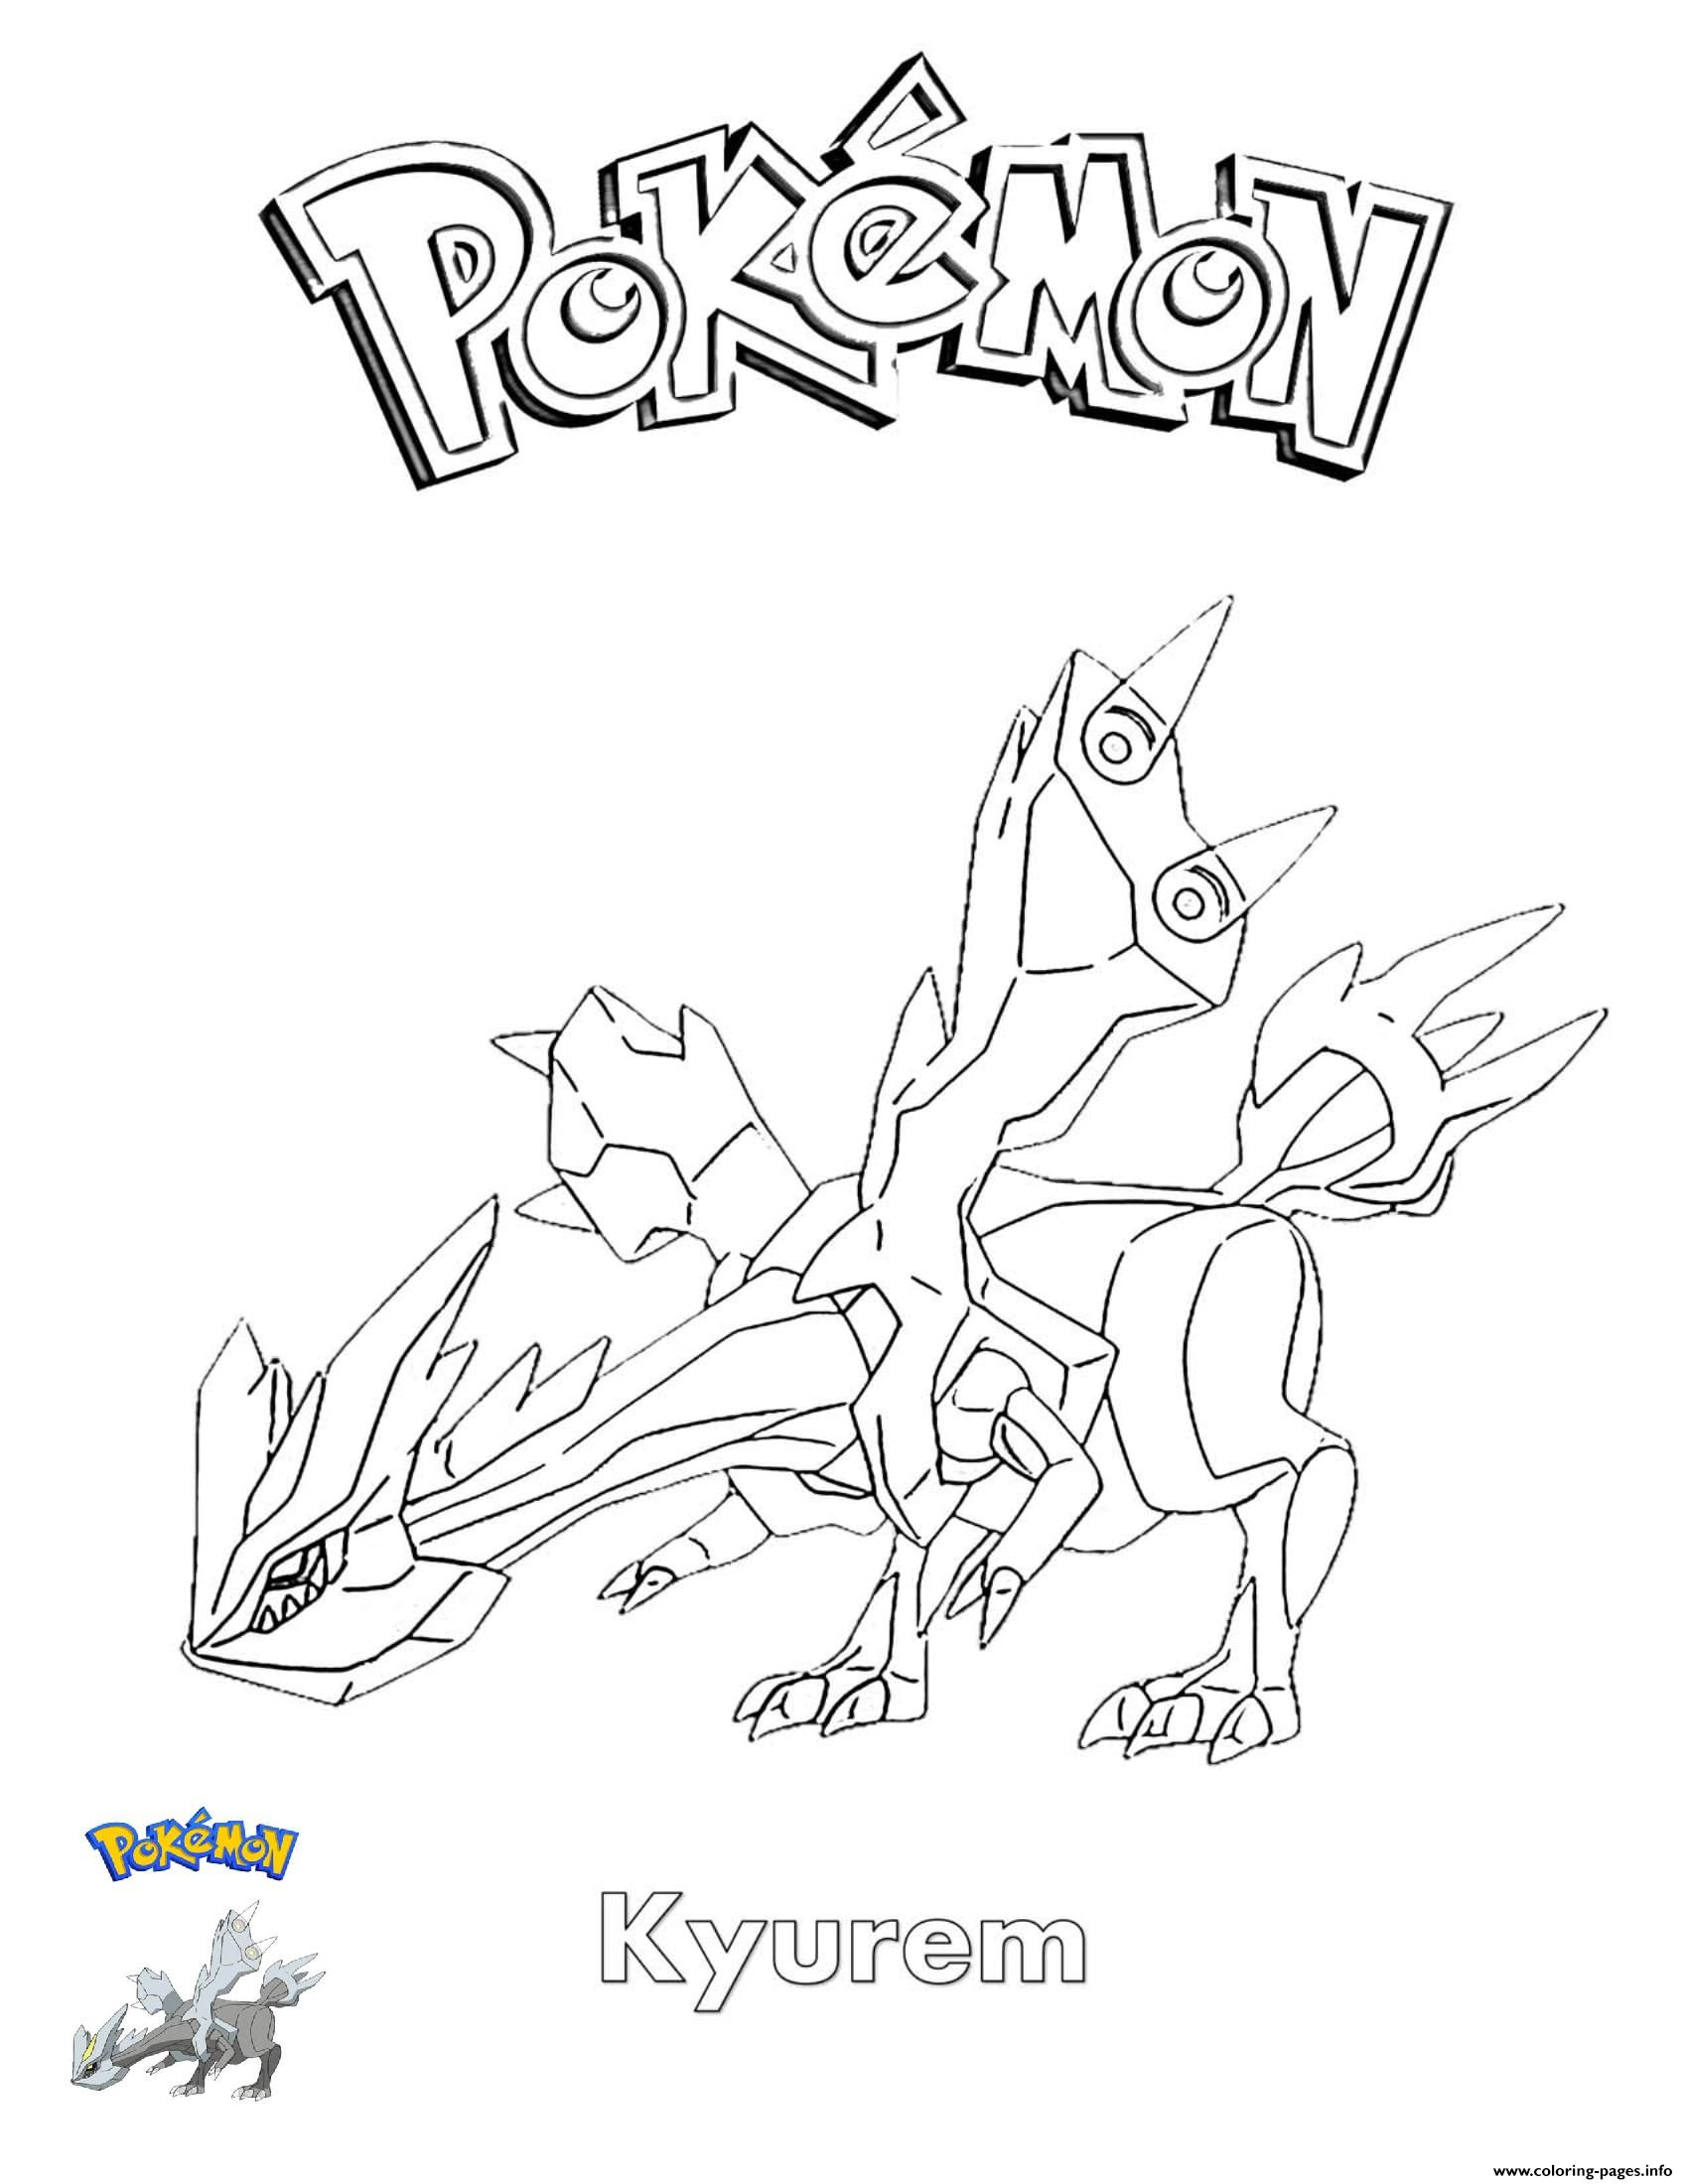 Kyurem Pokemon coloring pages